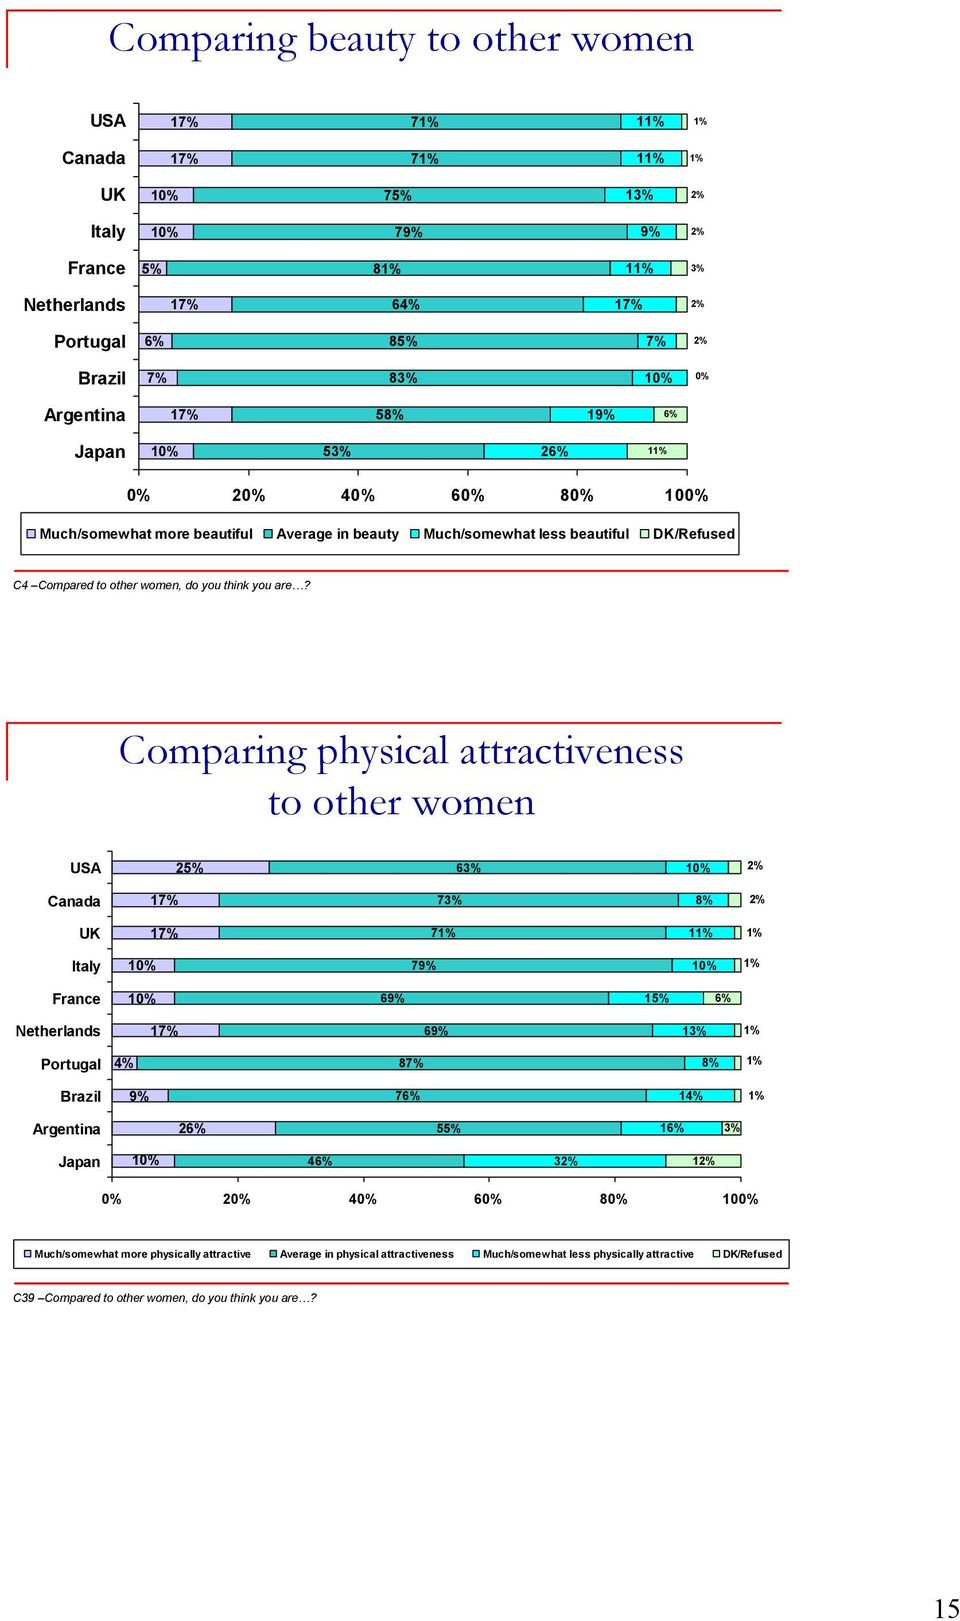 Comparing physical attractiveness to other women USA 25% 63% 1 2% Canada 17% 73% 8% 2% UK 17% 7 1 Italy 1 79% 1 France 1 69% 15% 6% Netherlands 17% 69% 13% Portugal 4% 87% 8% Brazil 9% 76% 14%